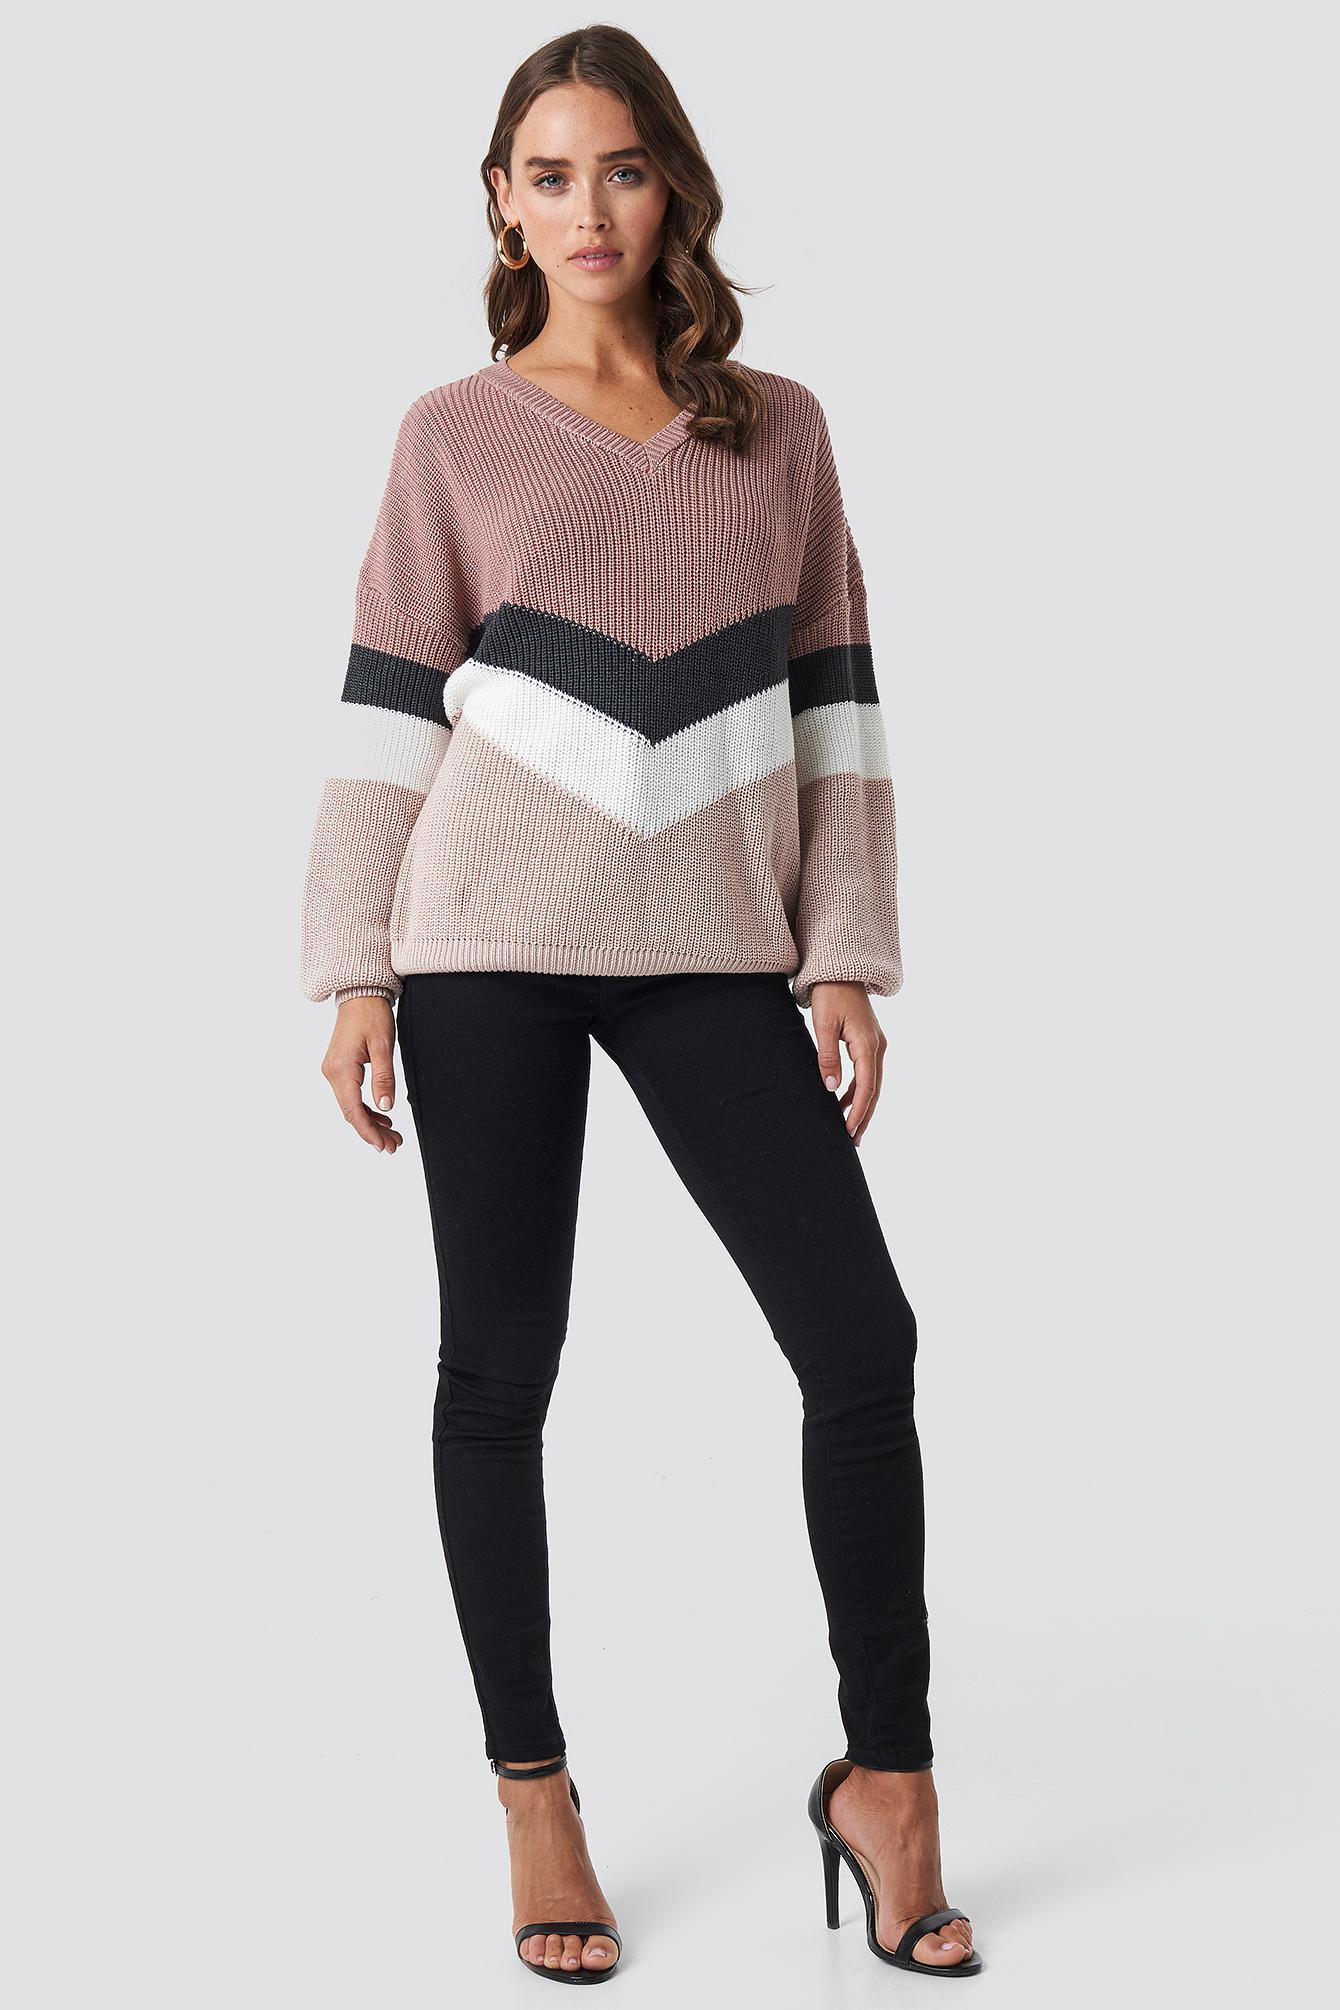 Color Lyst Pink Blocked Kd Dusty Balloon Na Sweater Sleeve Knitted qEwOCAE